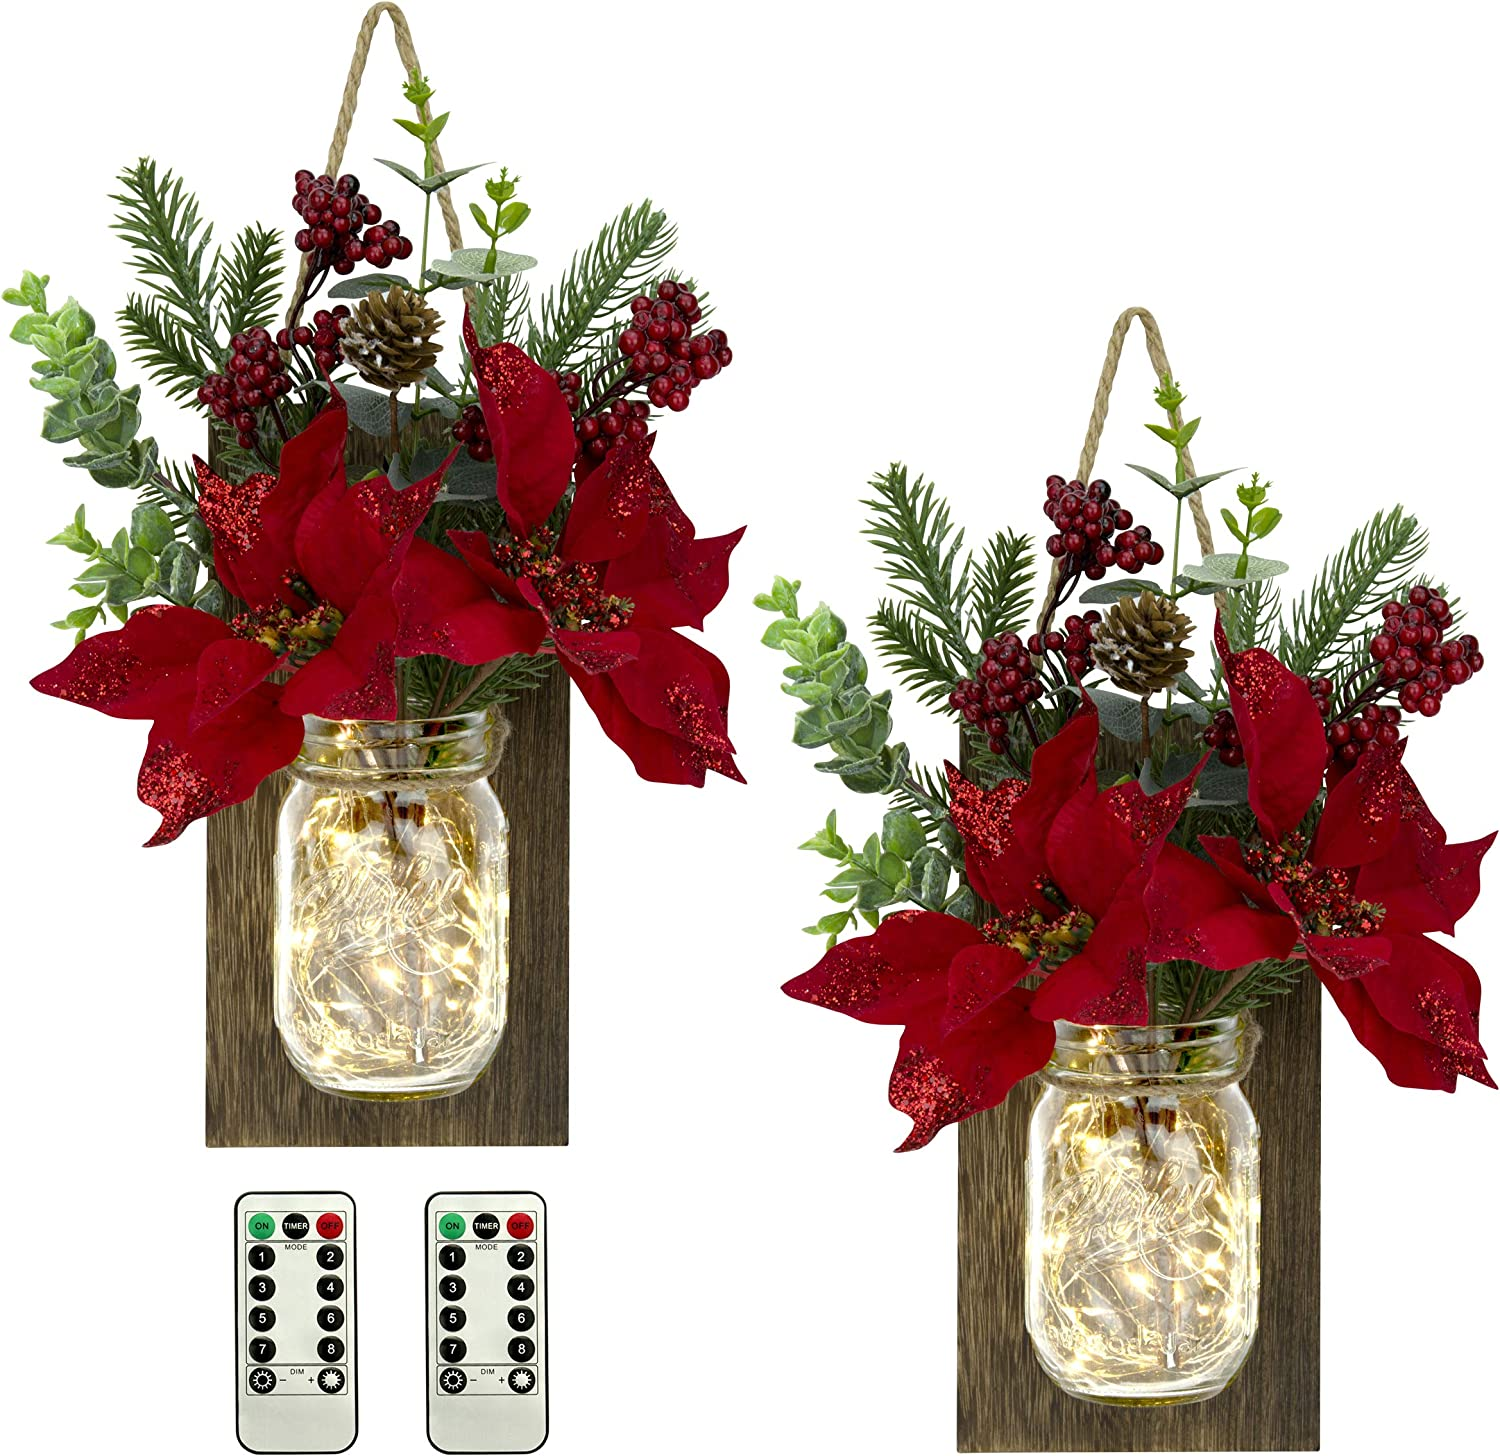 TenXVI Designs Remote Controlled Hanging Mason Jar Sconces - 2 Sets - Poinsettia Flowers, LED Fairy Lights - Rustic Farmhouse Wall Decor and Mason Jar Wall Decor and Christmas Decorations